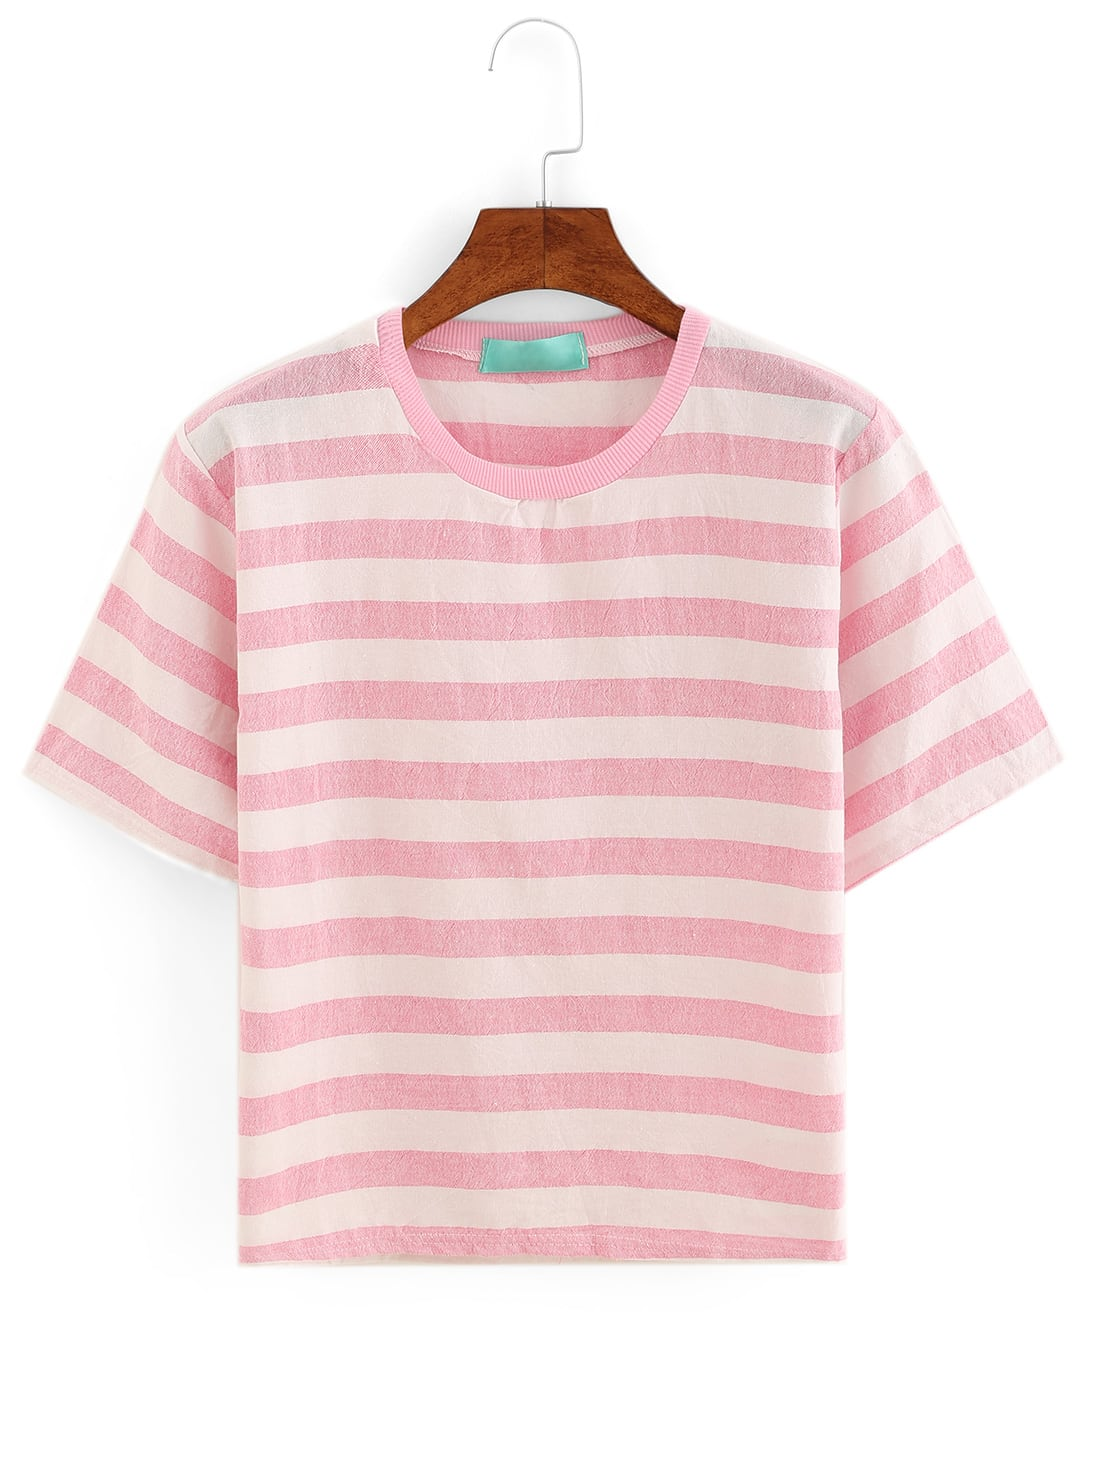 Pink Striped T Shirt Shein Sheinside